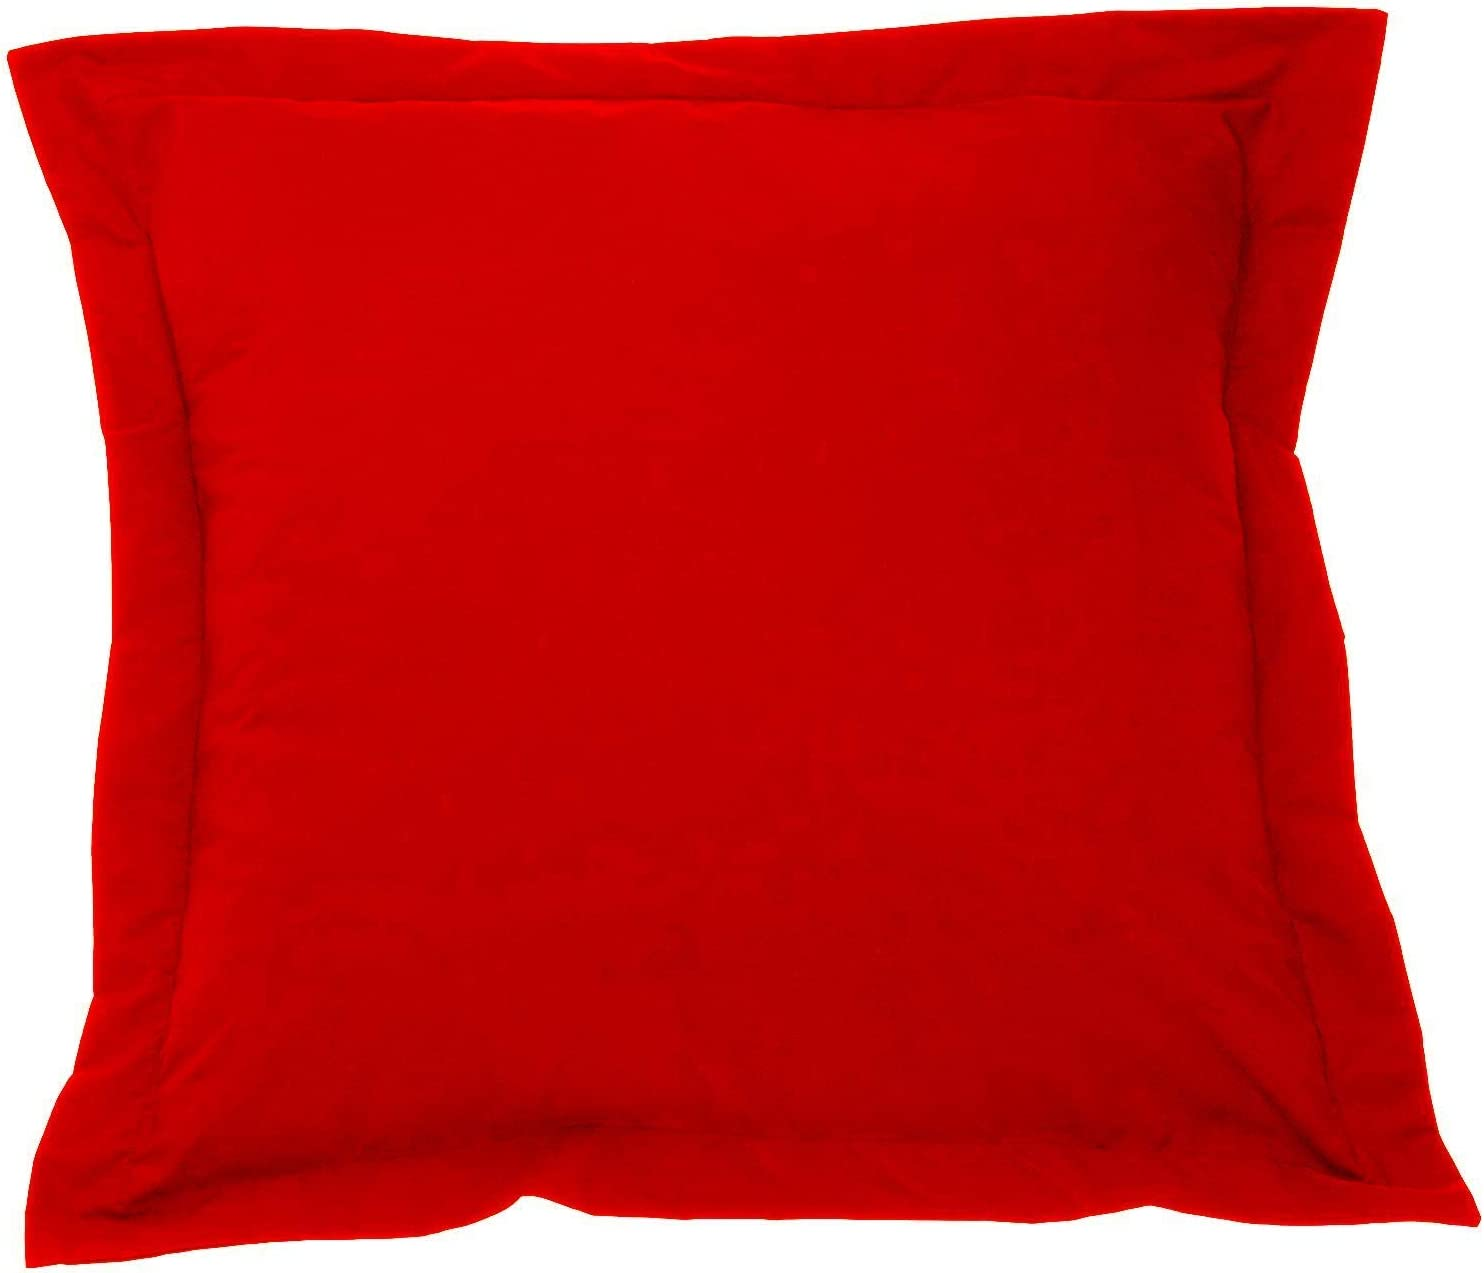 Amazon Com European Square Pillow Shams Set Of 2 Pillowcase Euro Shams 26x26 Red Pillow Covers Premium 550 Thread Count European Pillow Shams 100 Egyptian Cotton Gorgeous Euro Size Decorative Pillow Cover Cases Home